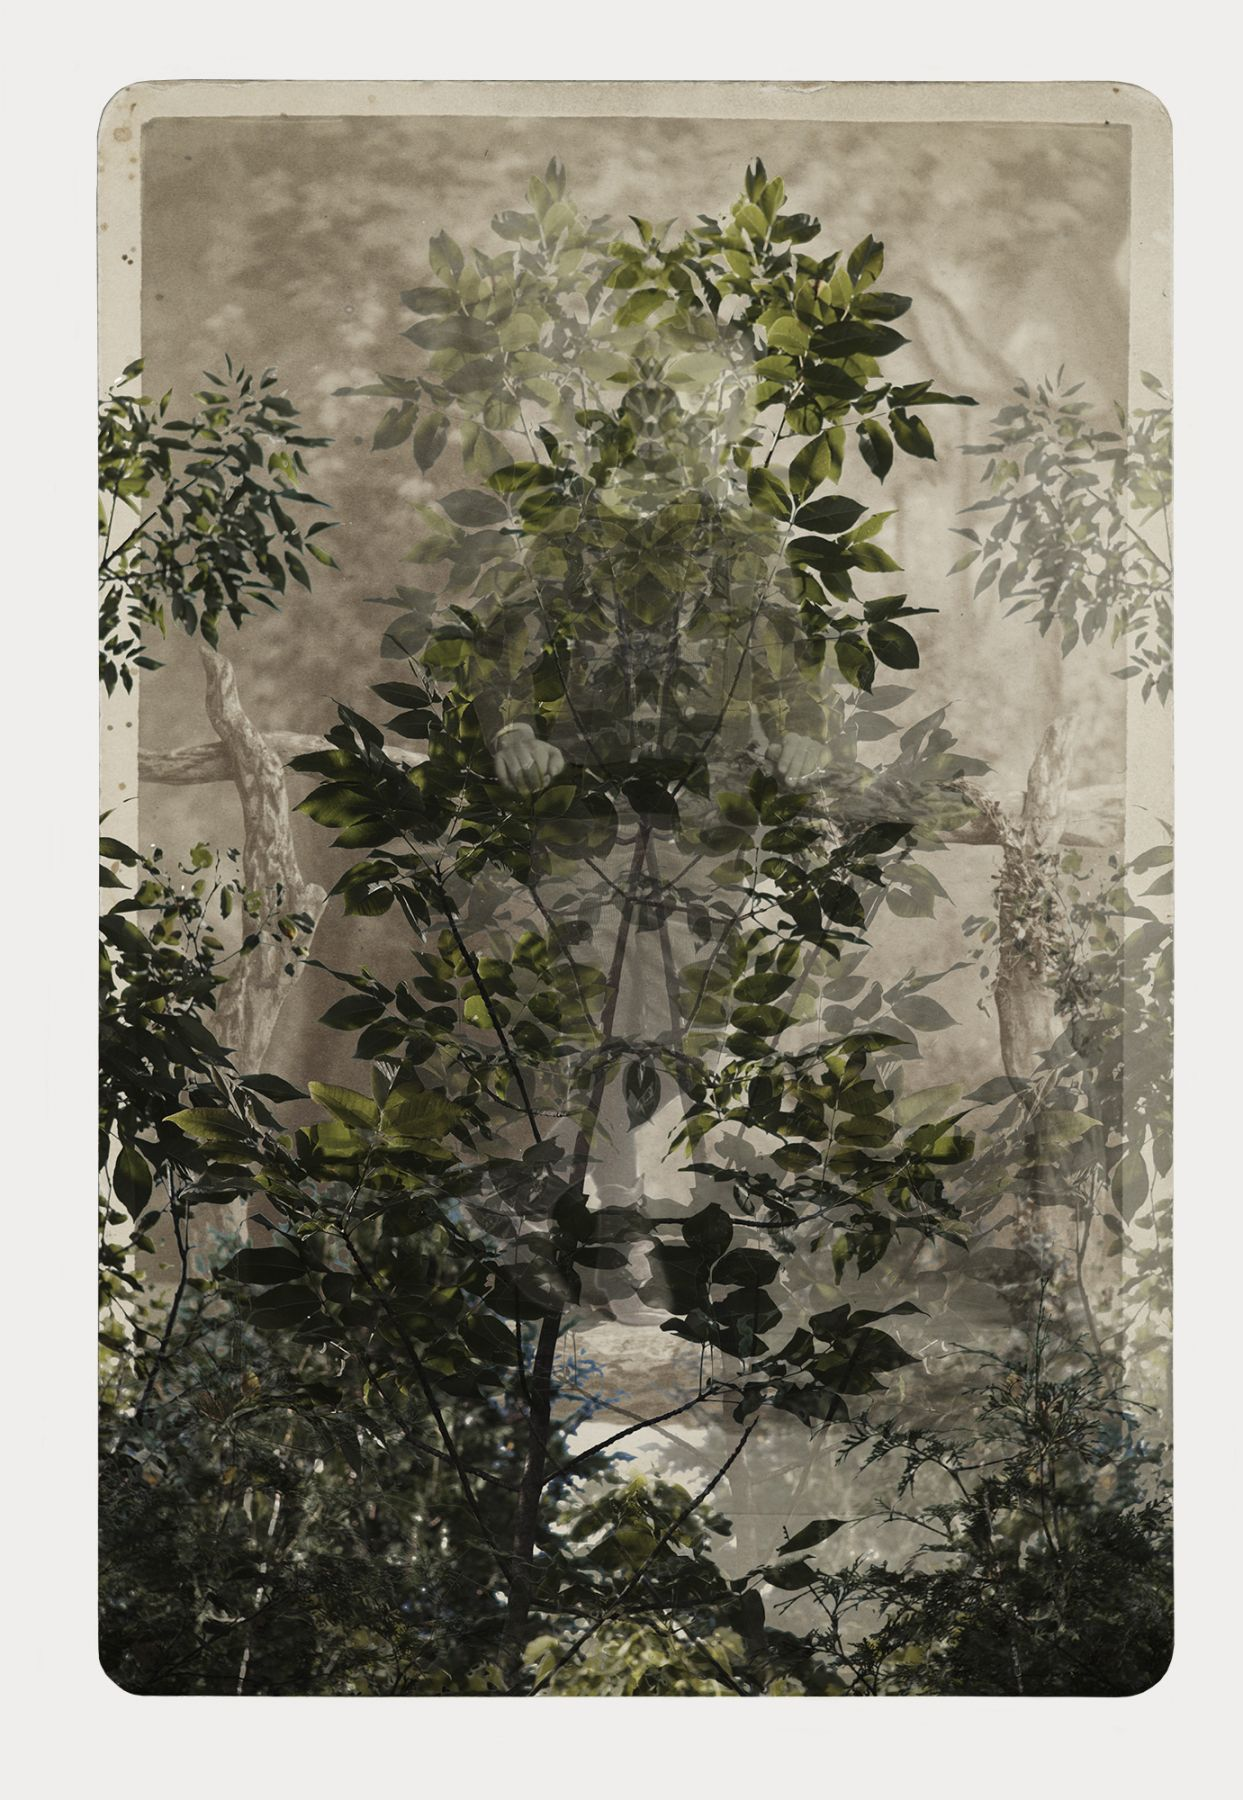 SARA ANGELUCCI | ARBORETUM (BOY/DOUBLE ASH) | PIGMENT PRINT ON ARCHIVAL PAPER | 31 X 44 INCHES | 2016